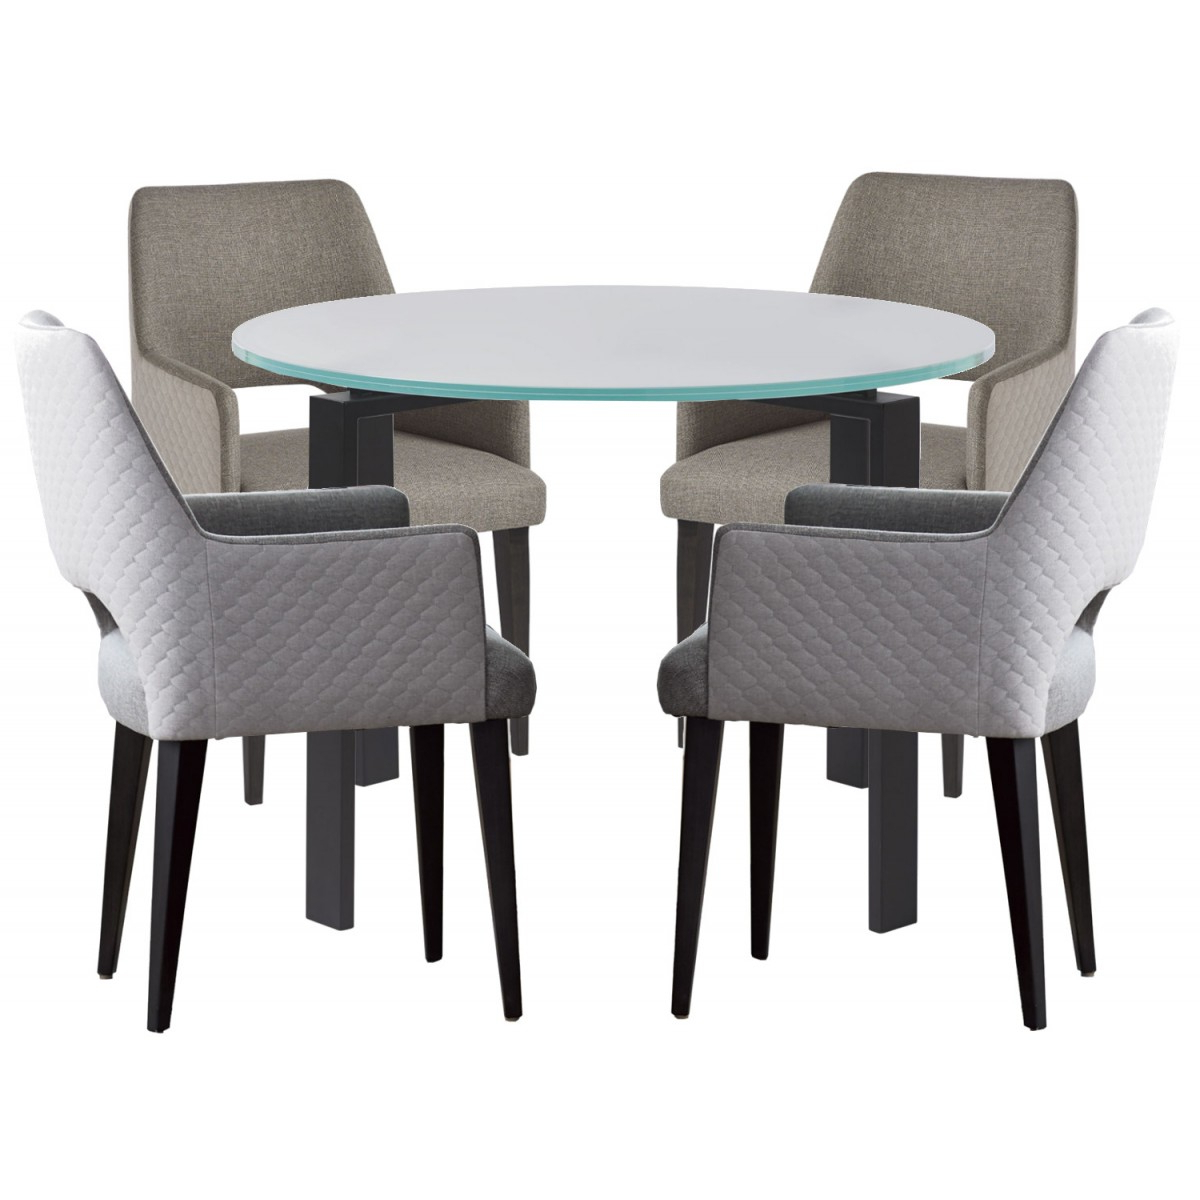 Universal Furniture Spaces Marshall 5Pc Dining Table Set  Frosted Glass Top Inside Madison Park Rachel Grey Media Credenzas (View 20 of 20)